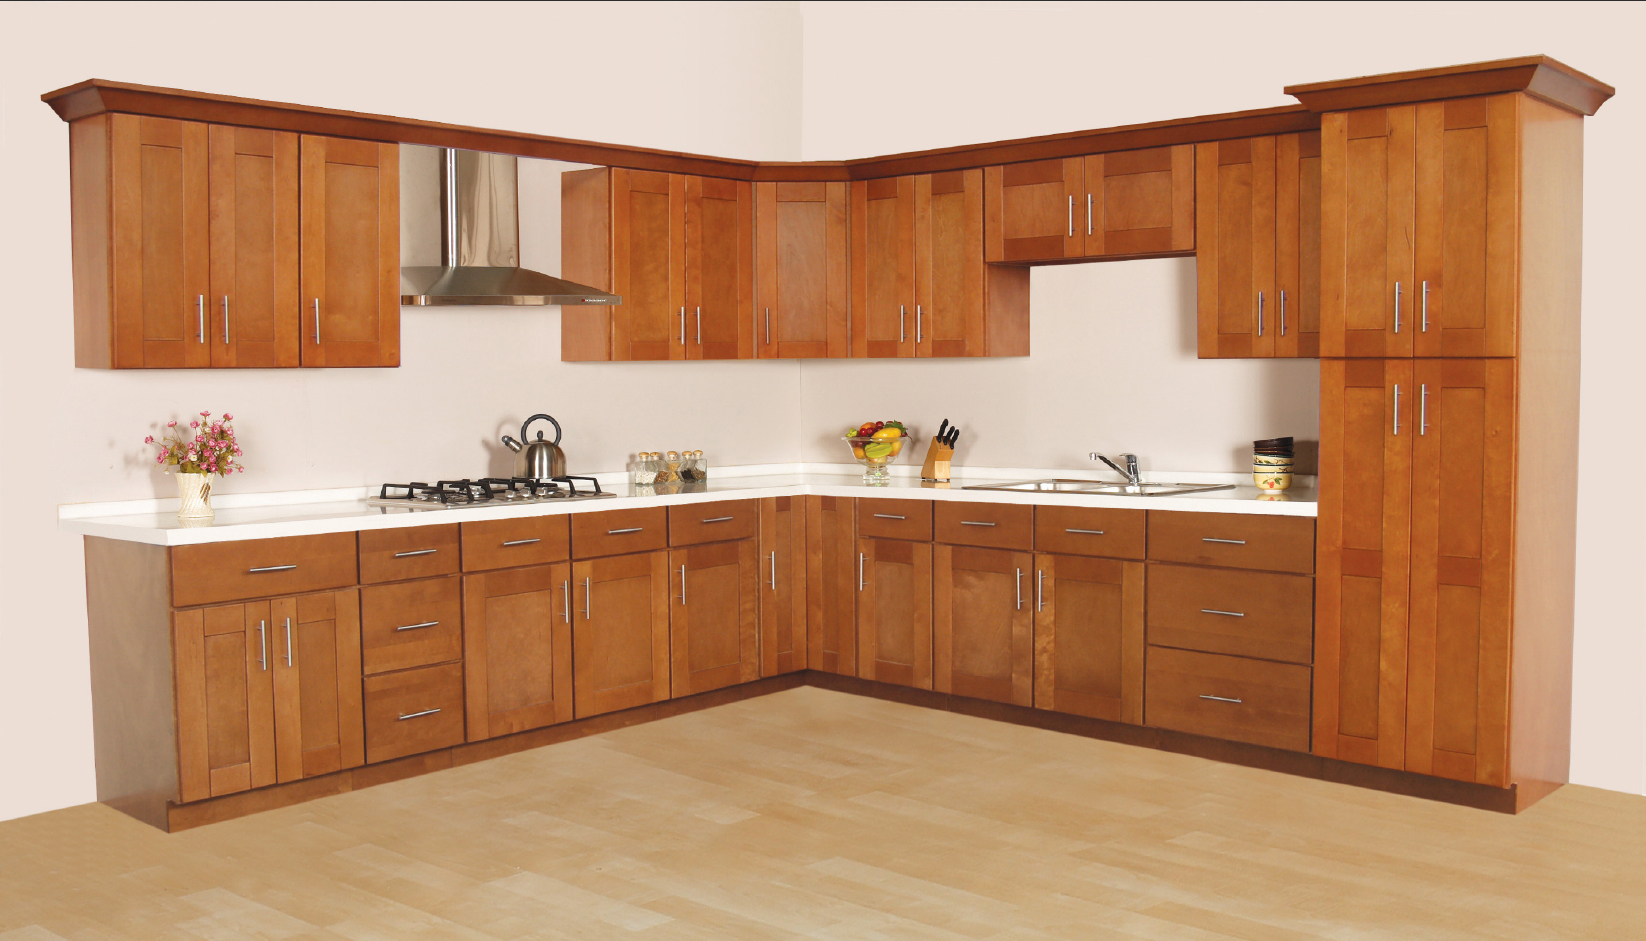 Menards kitchen cabinet price and details home and for Kitchen kitchen cabinets